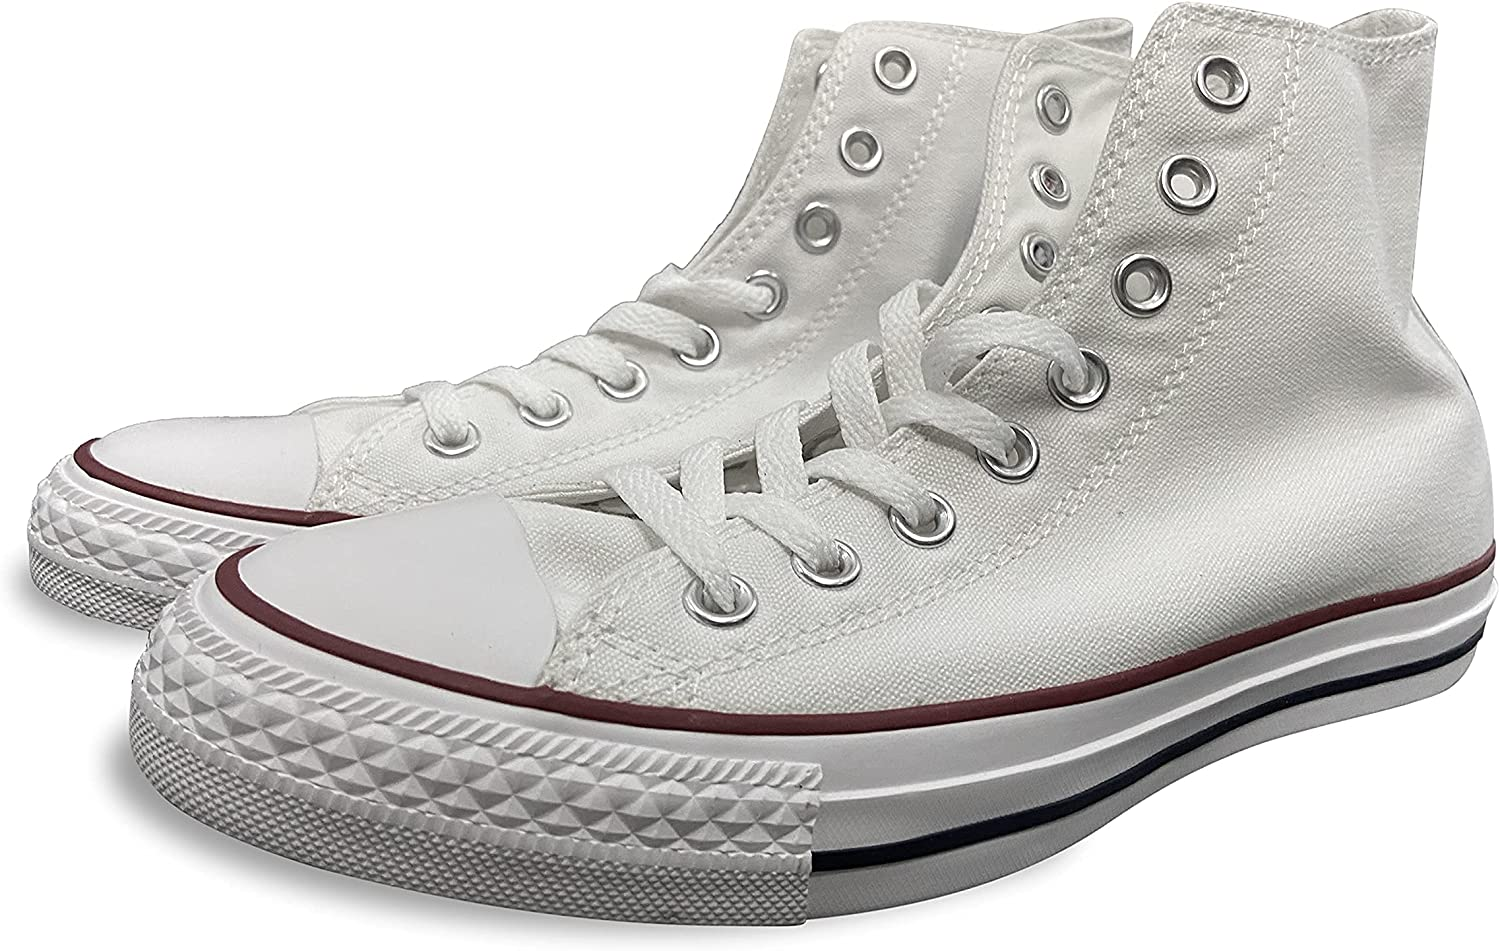 Boston Mall Women's High Special sale item Tops Canvas Sneakers Shoes Converse for Replacement